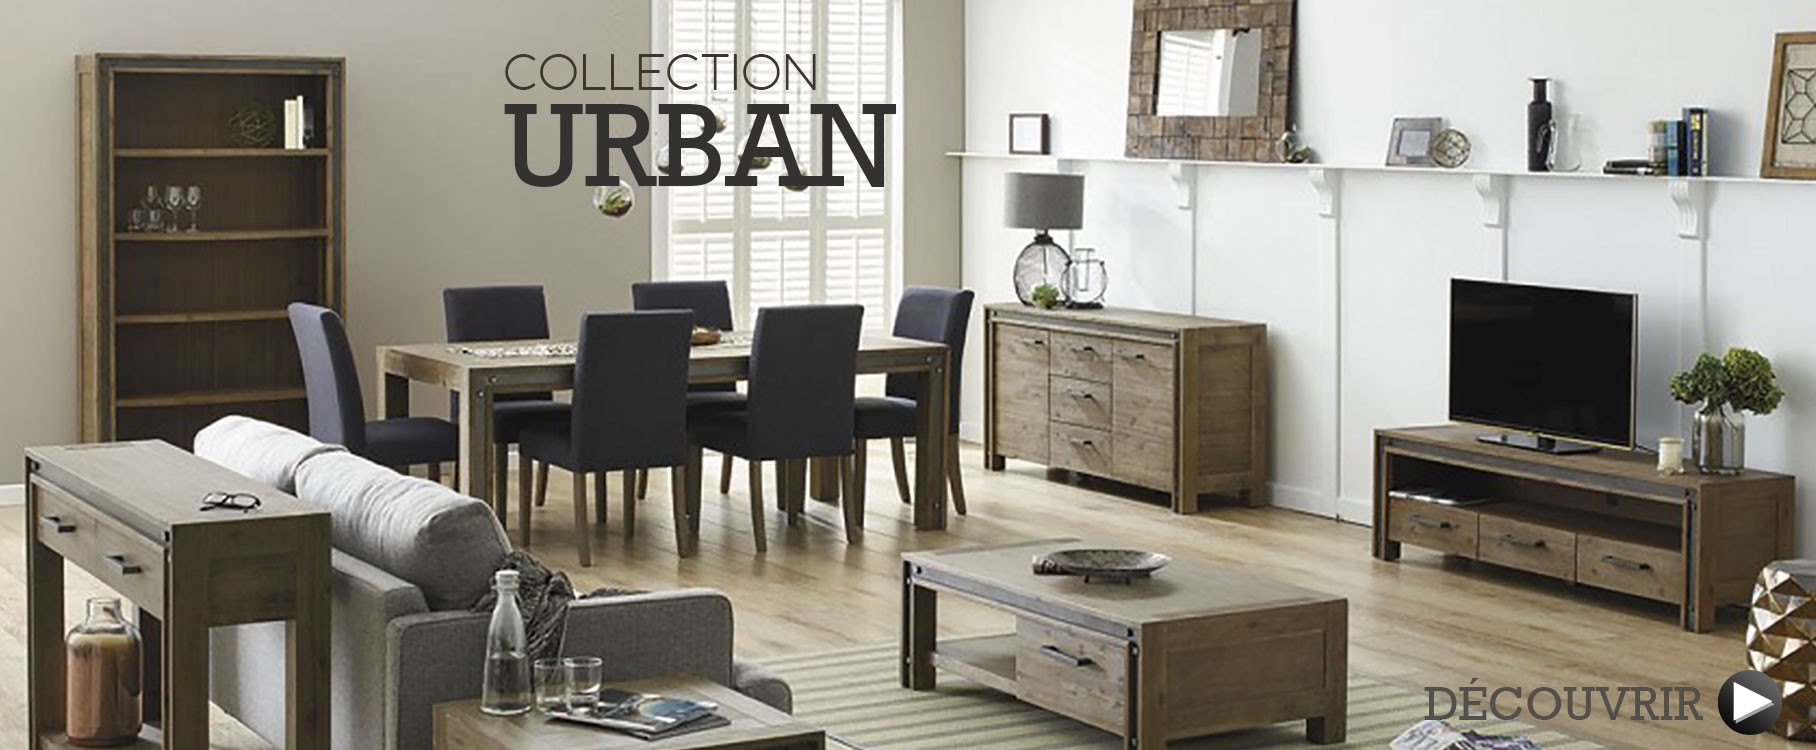 Mobilier industriel en collection Urban